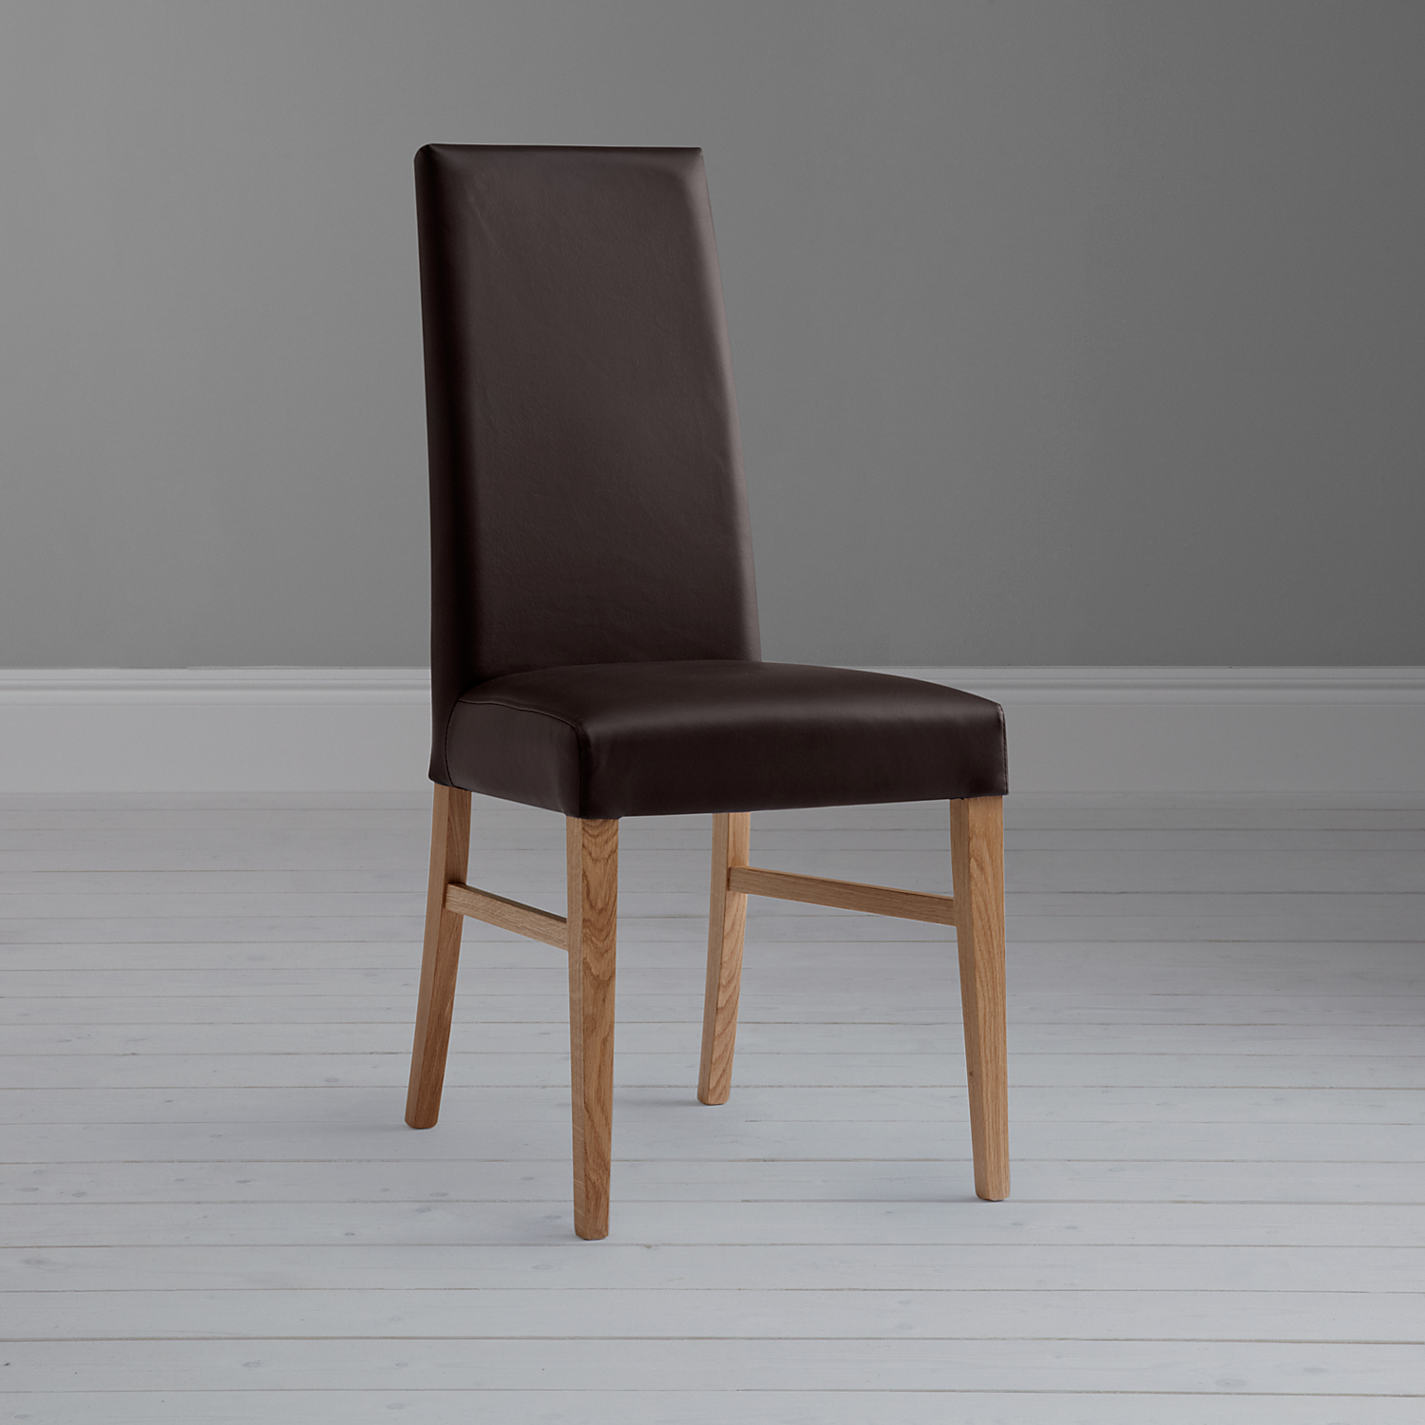 Buy John Lewis Vanessa Dining Chair Online at johnlewis com  Buy John Lewis Vanessa Dining Chair   John Lewis. Seat Pads For Dining Chairs John Lewis. Home Design Ideas